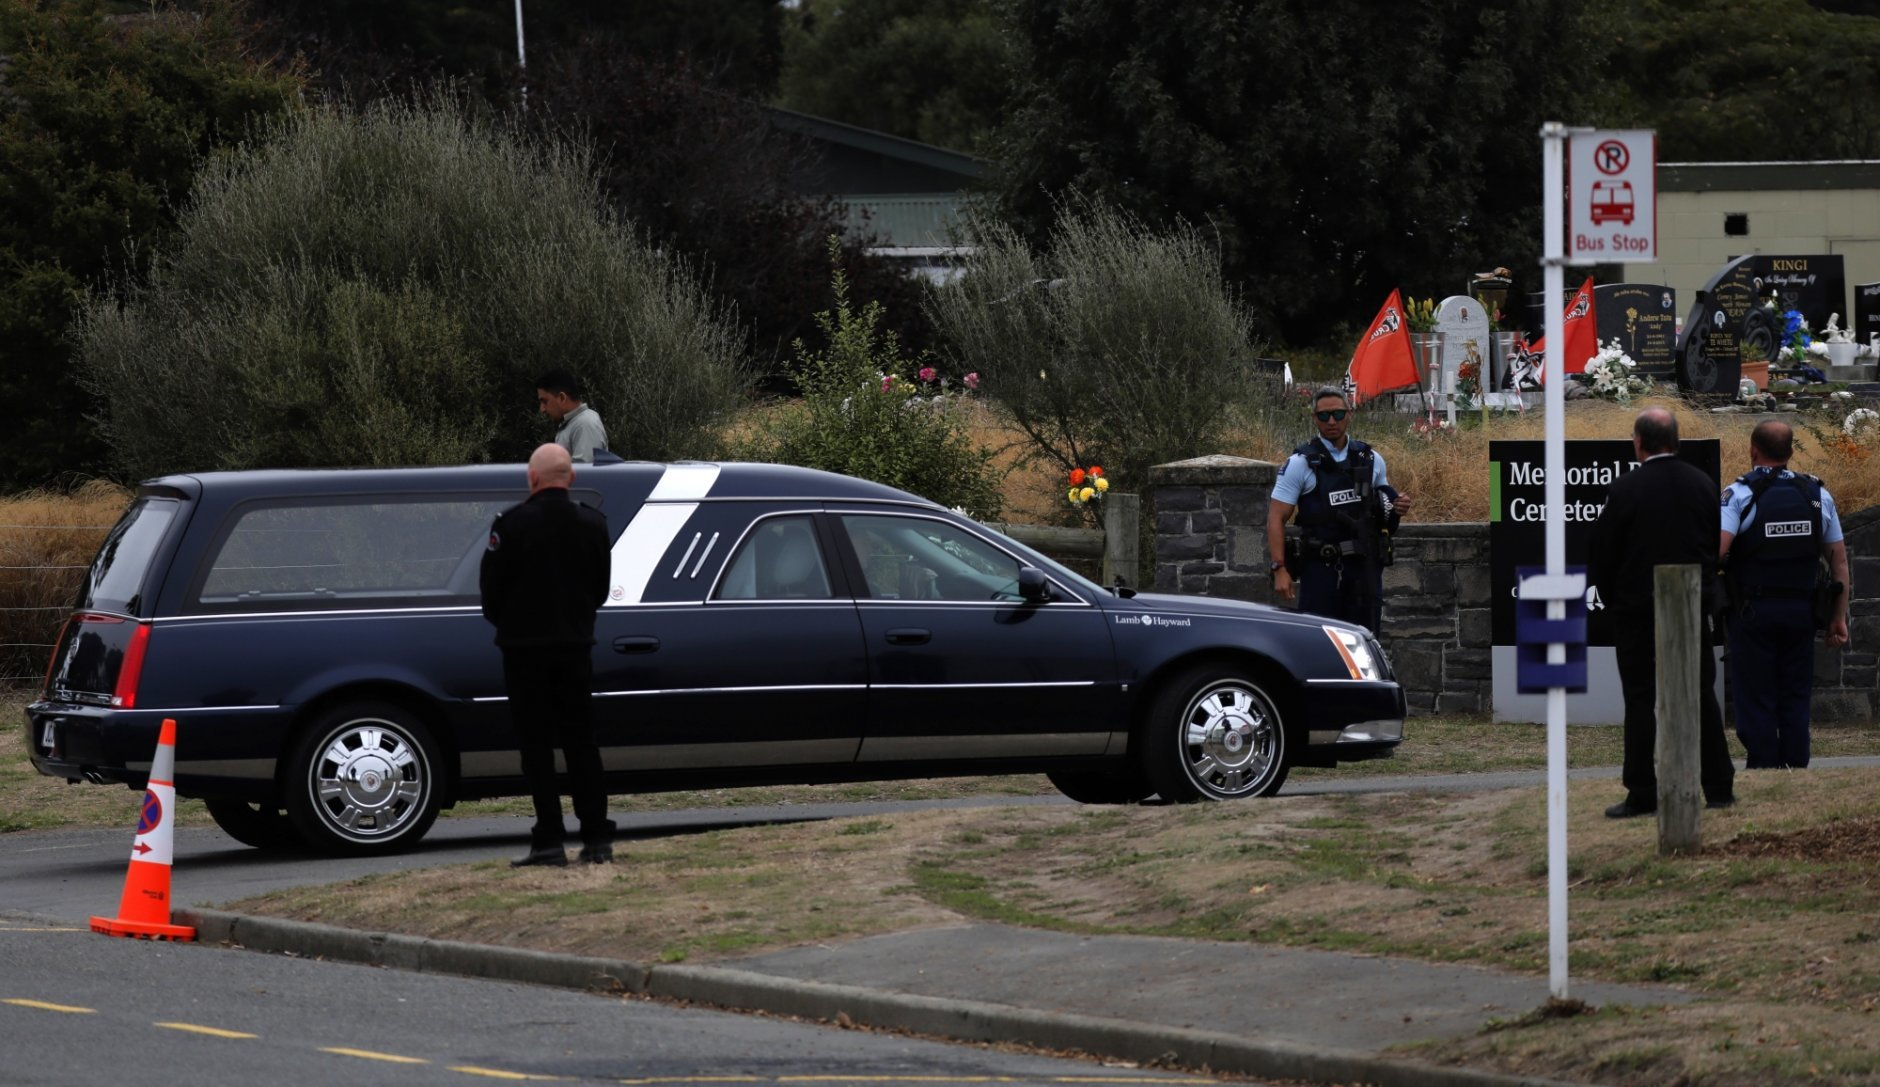 A hearse arrives with the body of a victim of the mosque shootings for burial at the Memorial Park Cemetery in Christchurch, New Zealand, Thursday, March 21, 2019. (AP Photo/Vincent Yu)